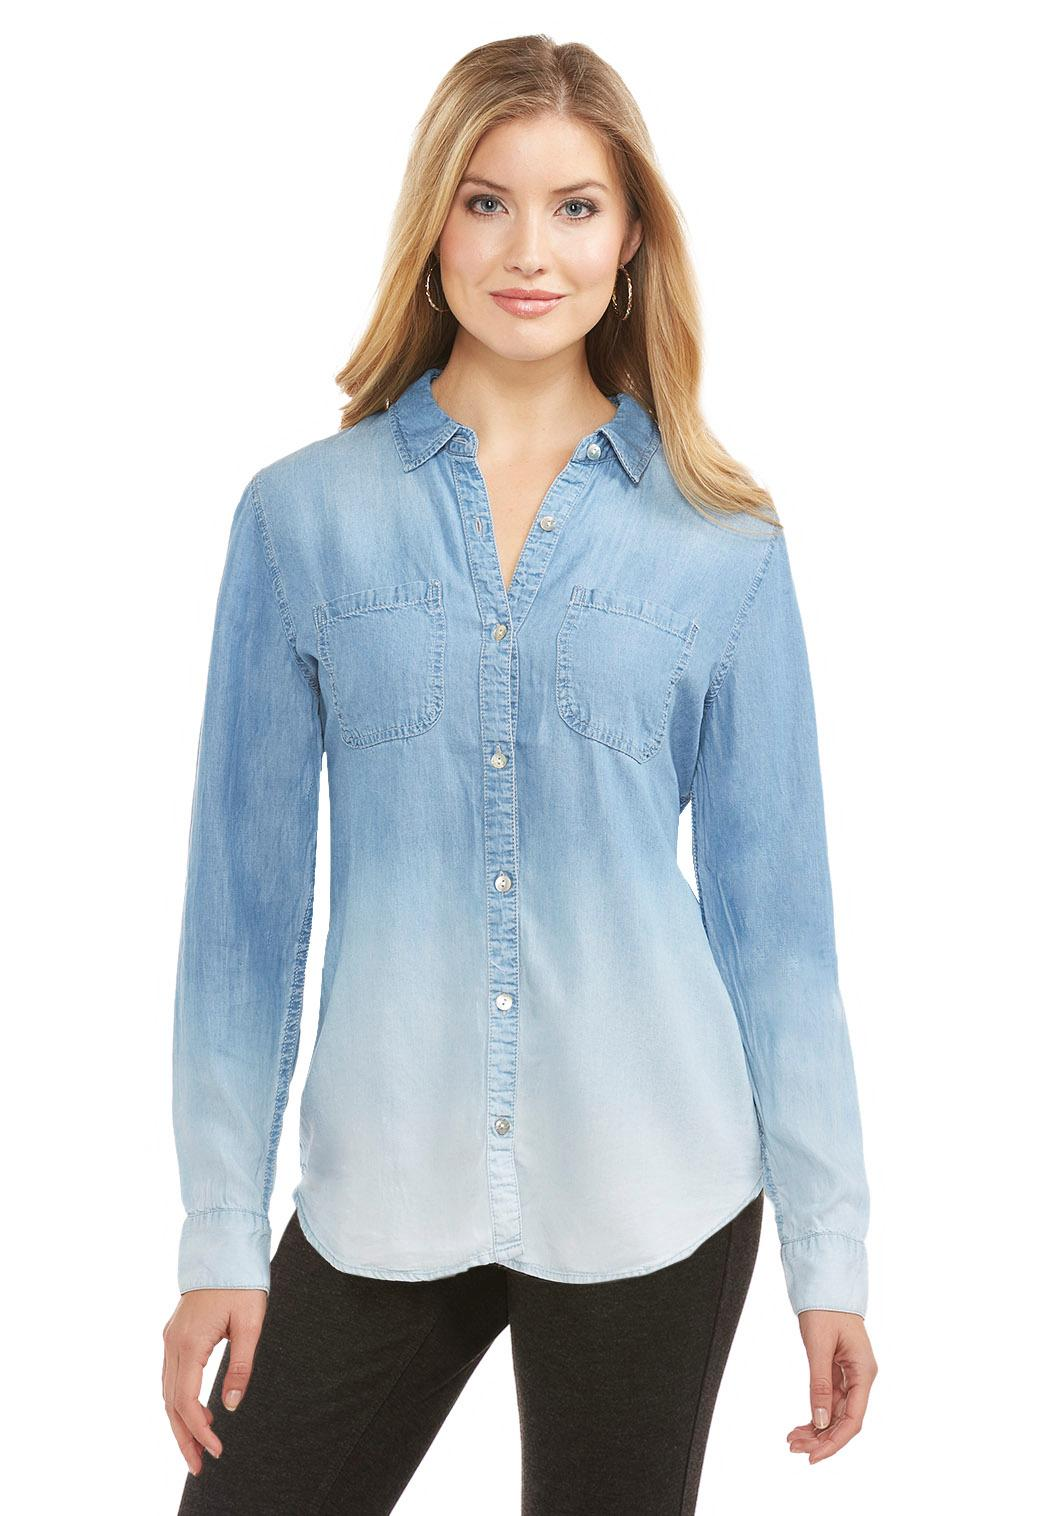 Ombr Chambray Shirt Plus Tops Cato Fashions